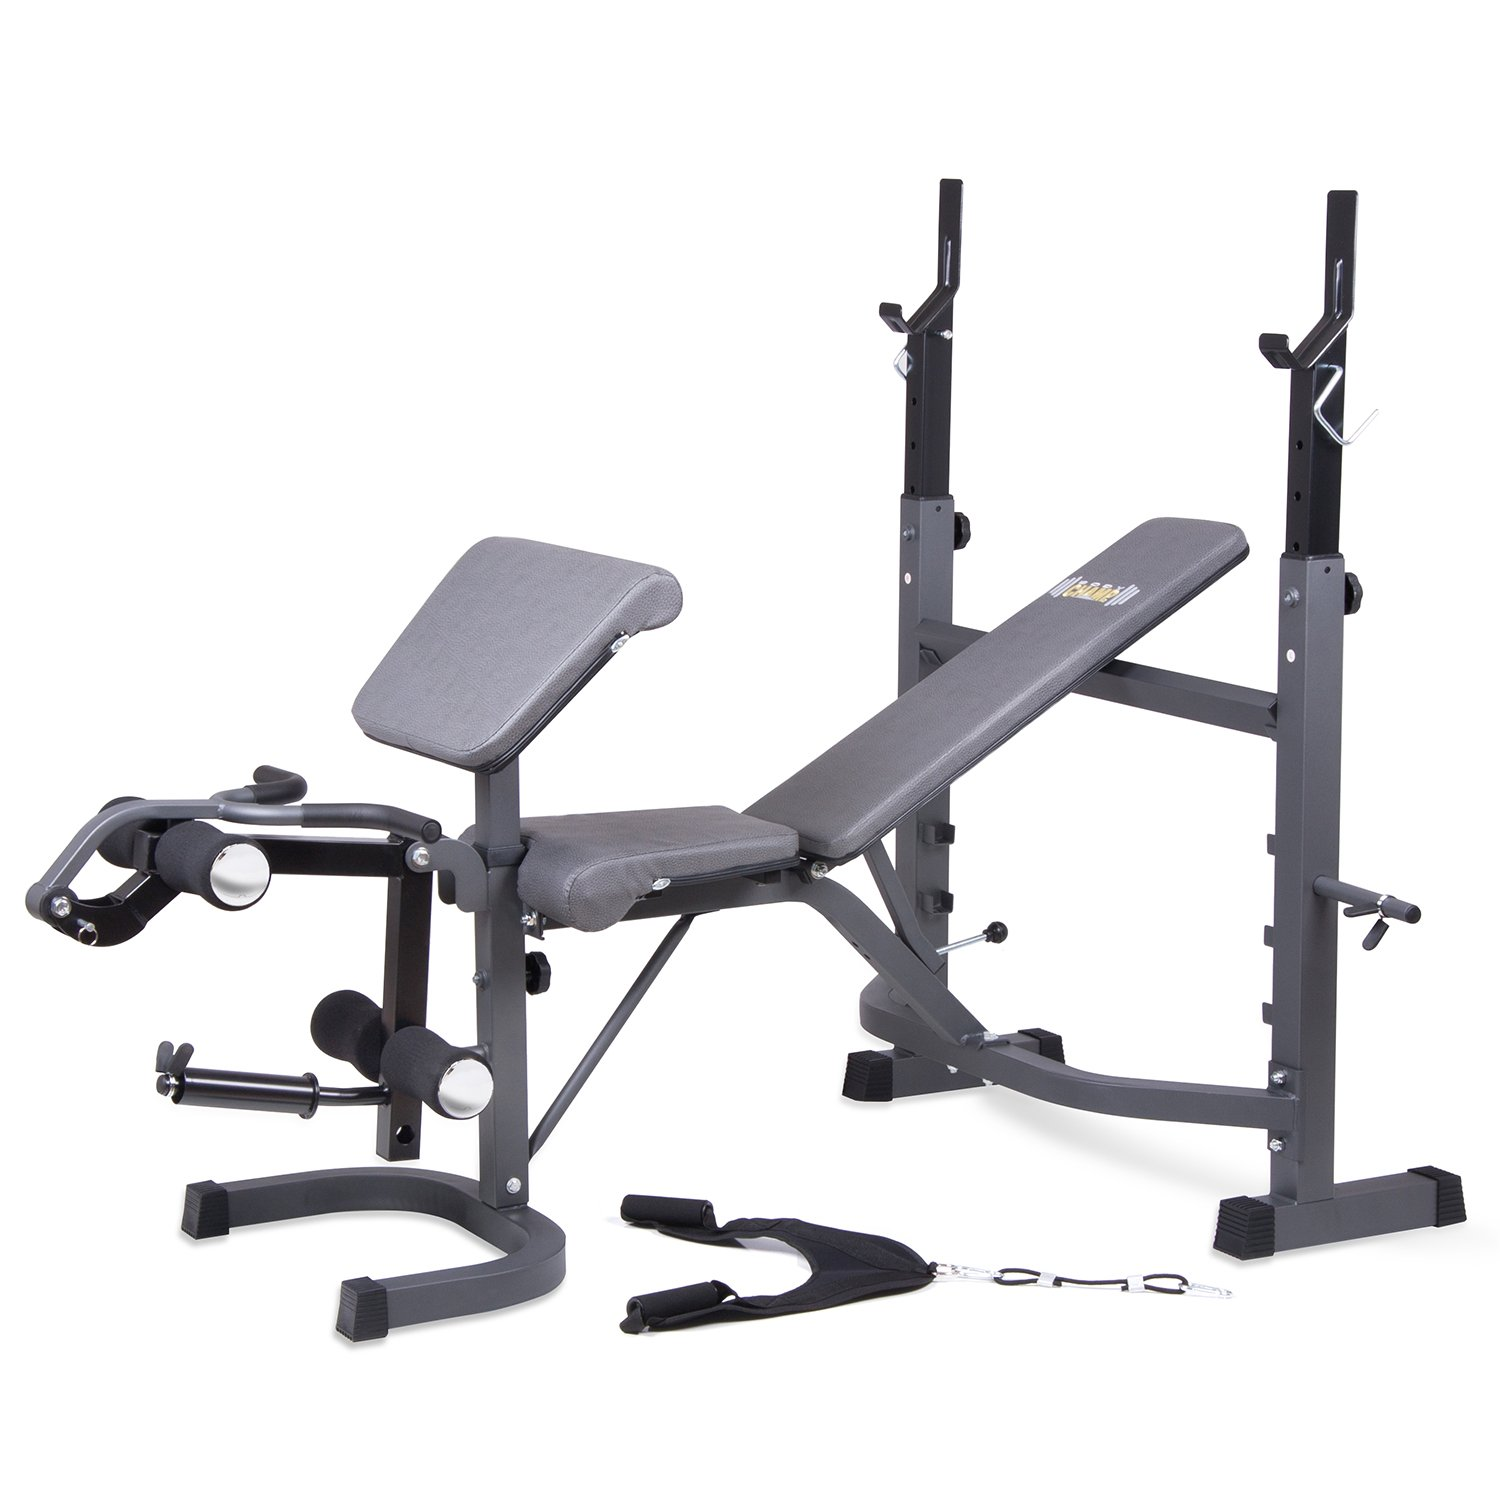 Body Champ Olympic Weight Bench with Preacher Curl, Leg Developer and Crunch Handle, Dark Gray/Black by Body Champ